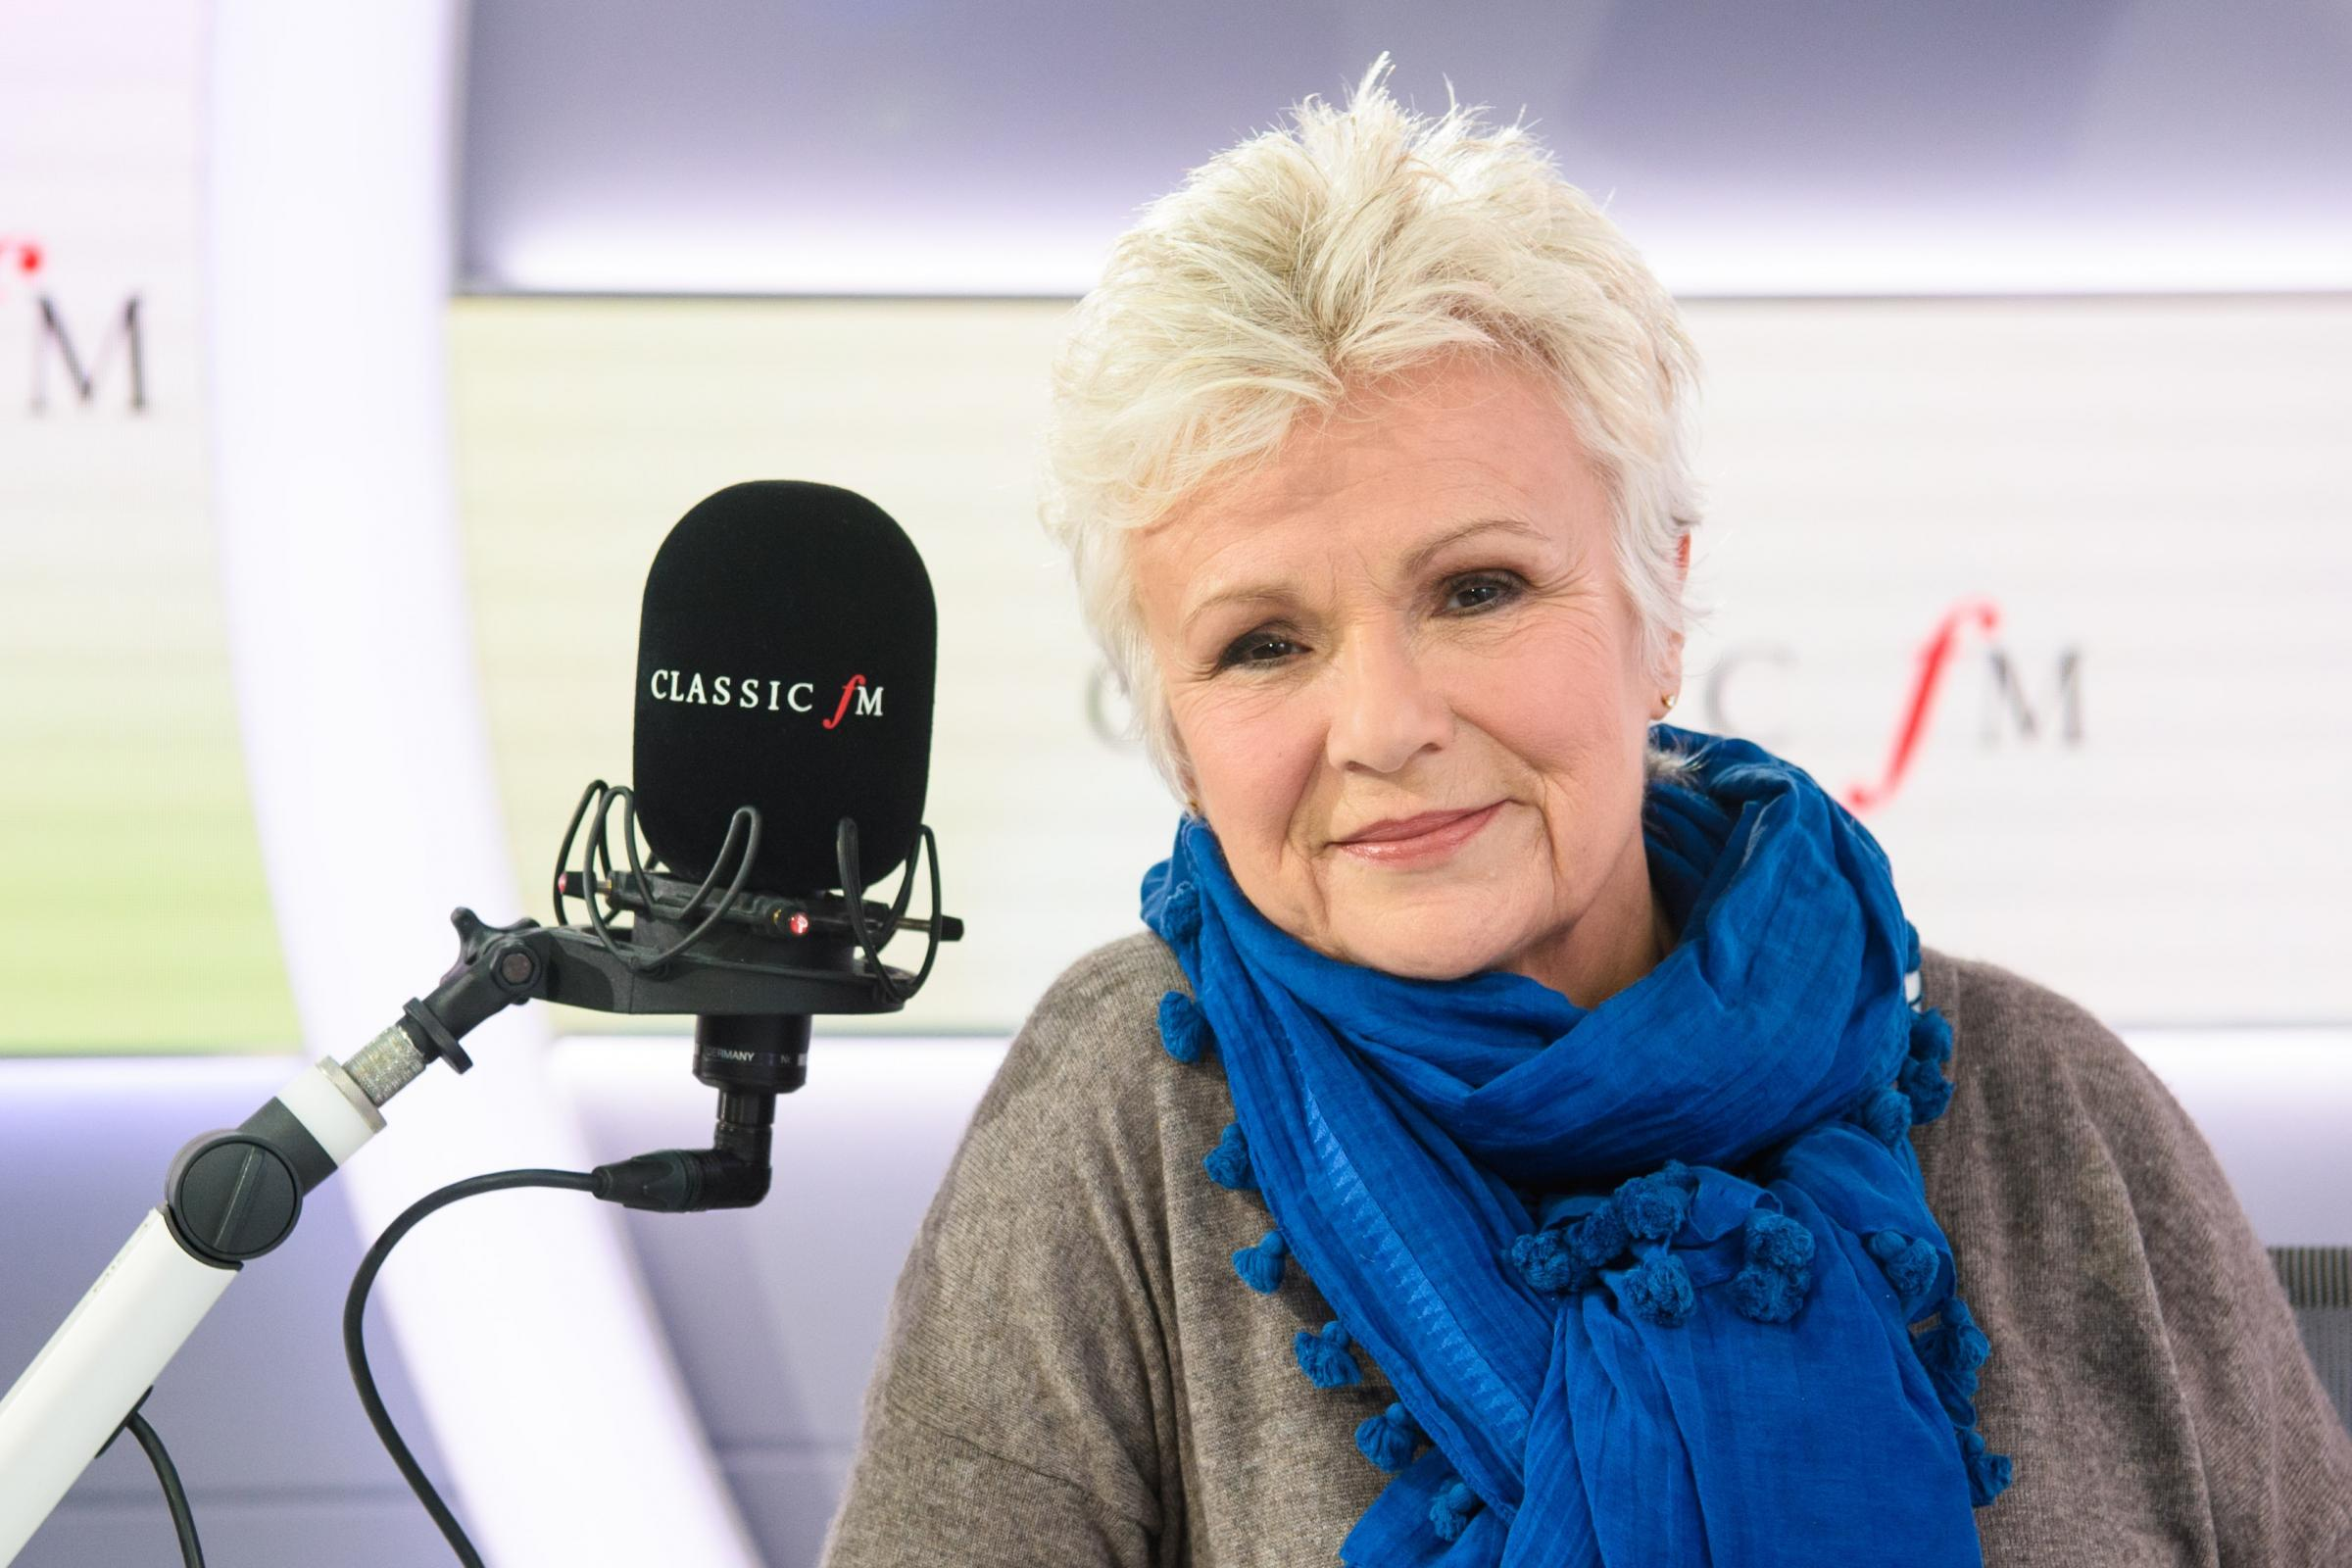 Dame Julie Walters (Classic FM)